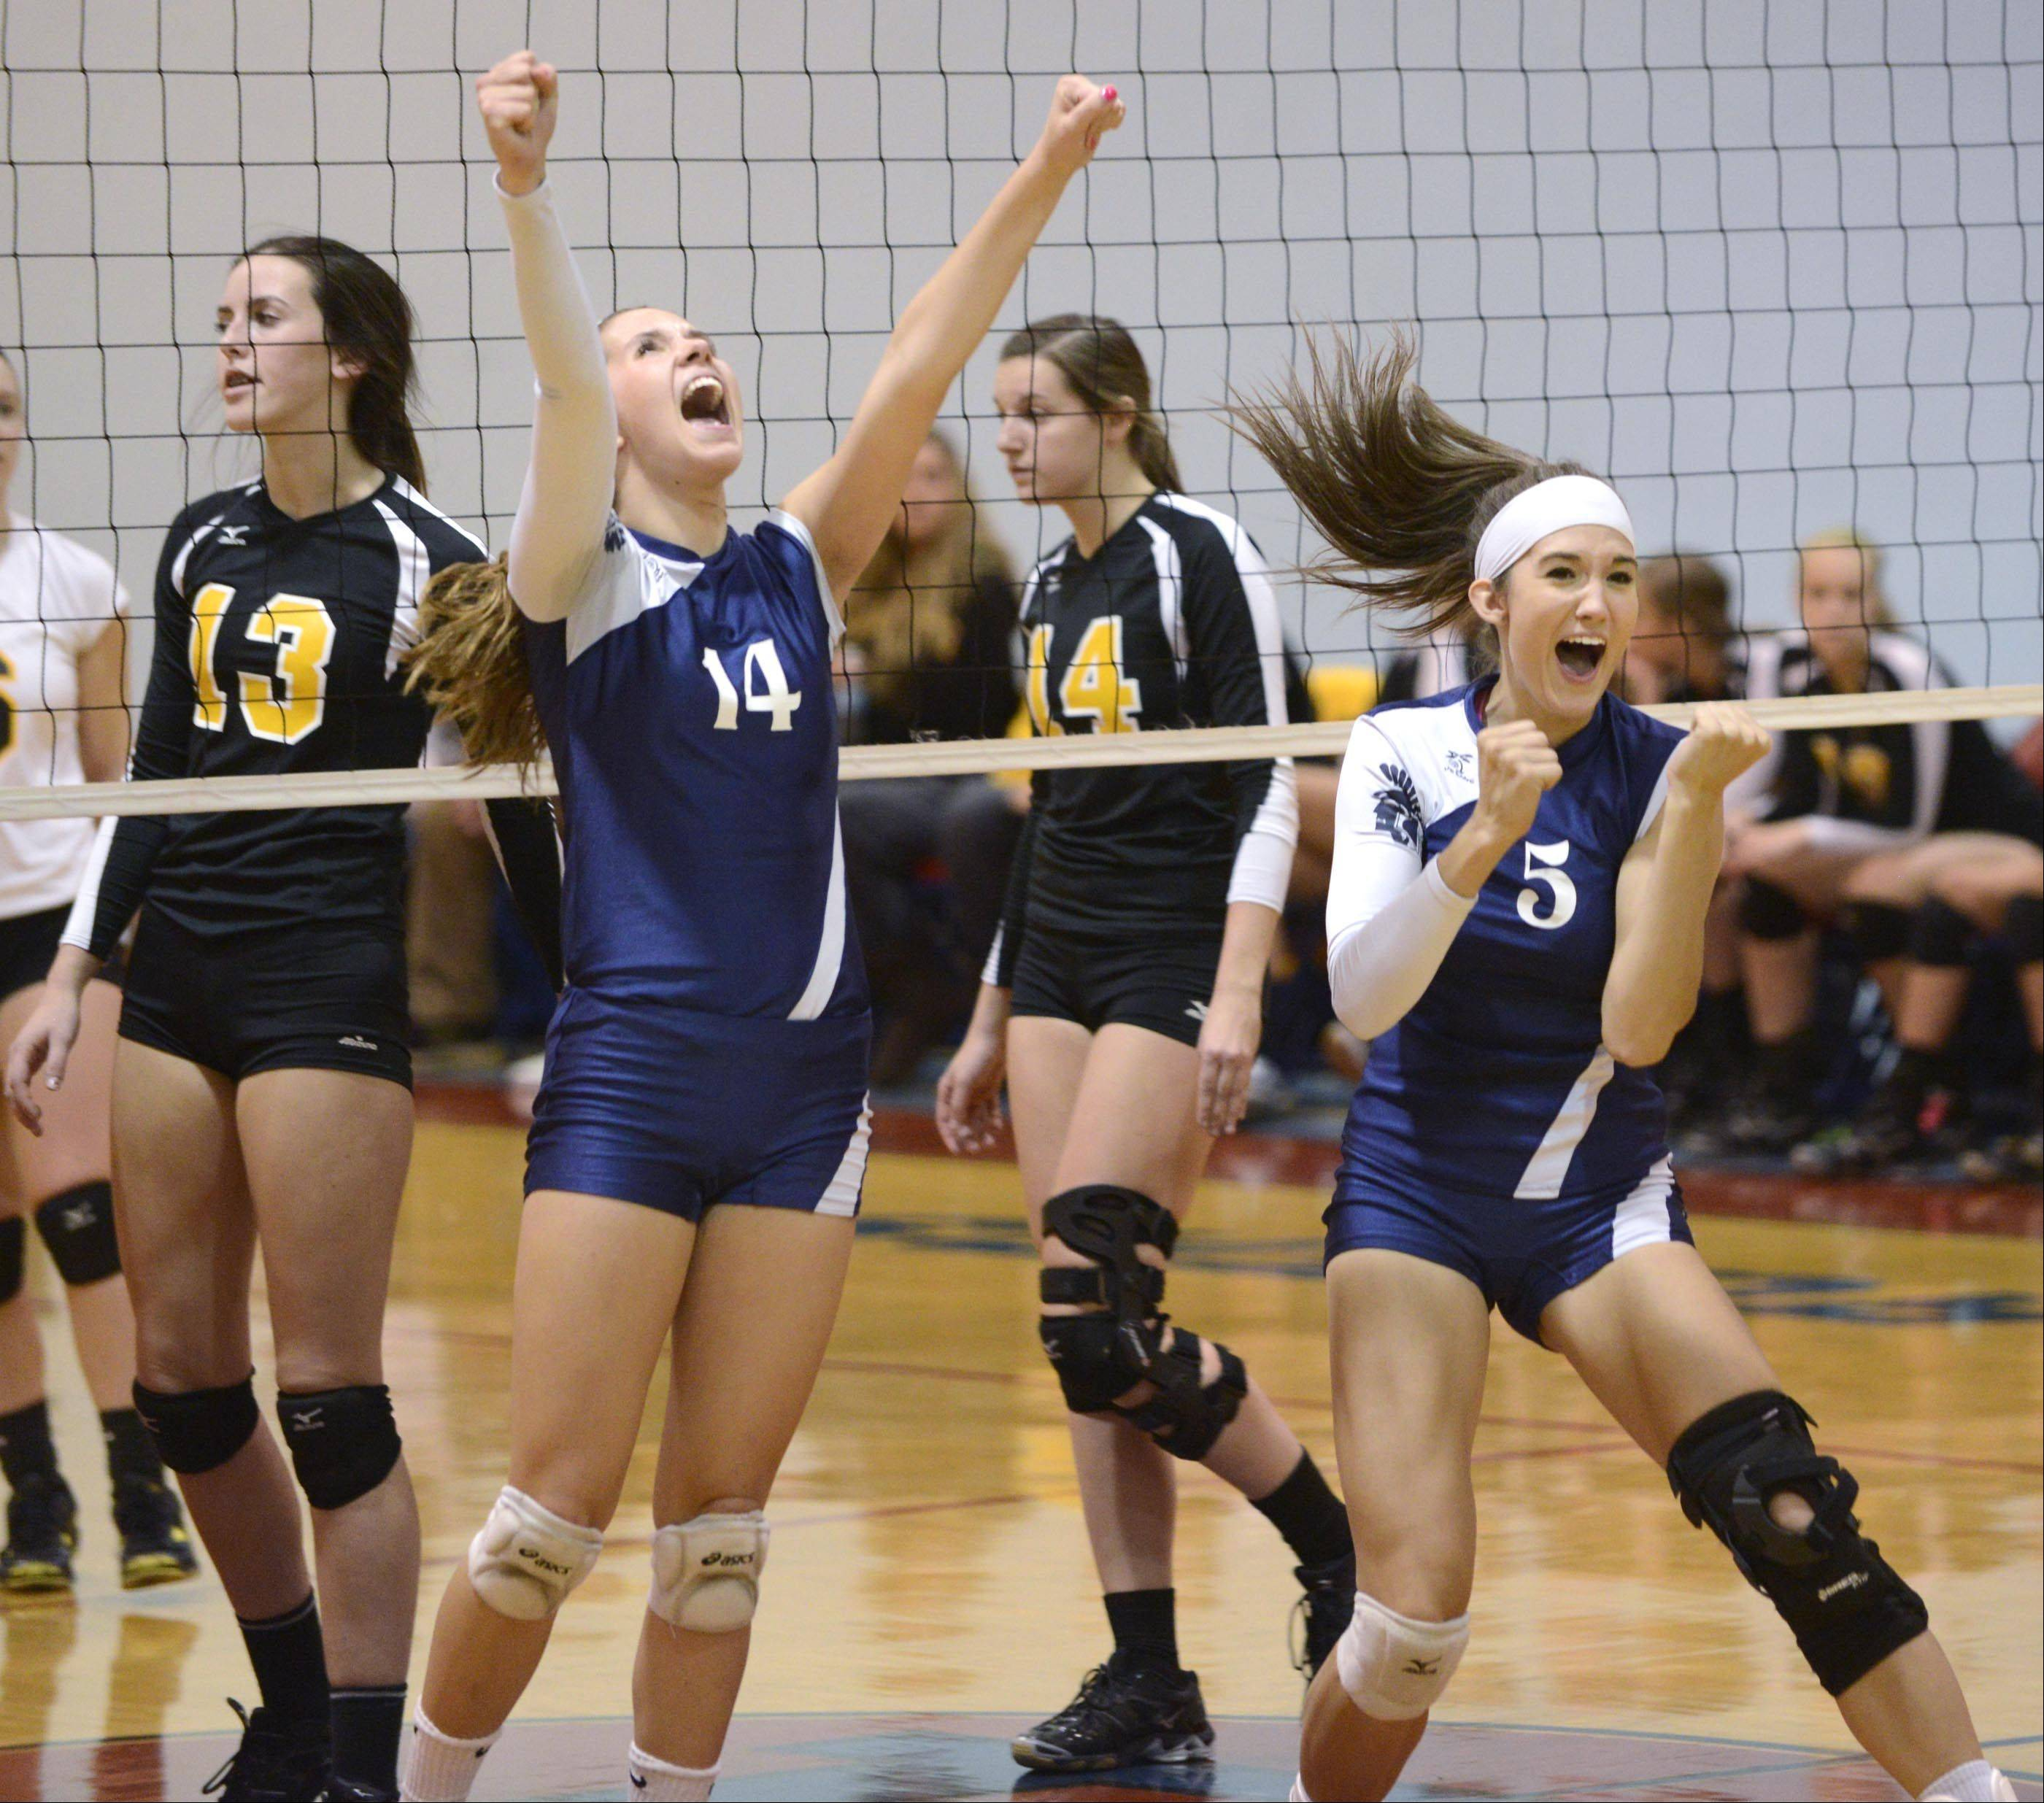 Cary-Grove�s Sarah Graham and Kayli Trausch, right, exhale in the winning point as Jacobs� Katie Mahoney and Allie Campbell react on the other side of the net Monday in Carpentersville.